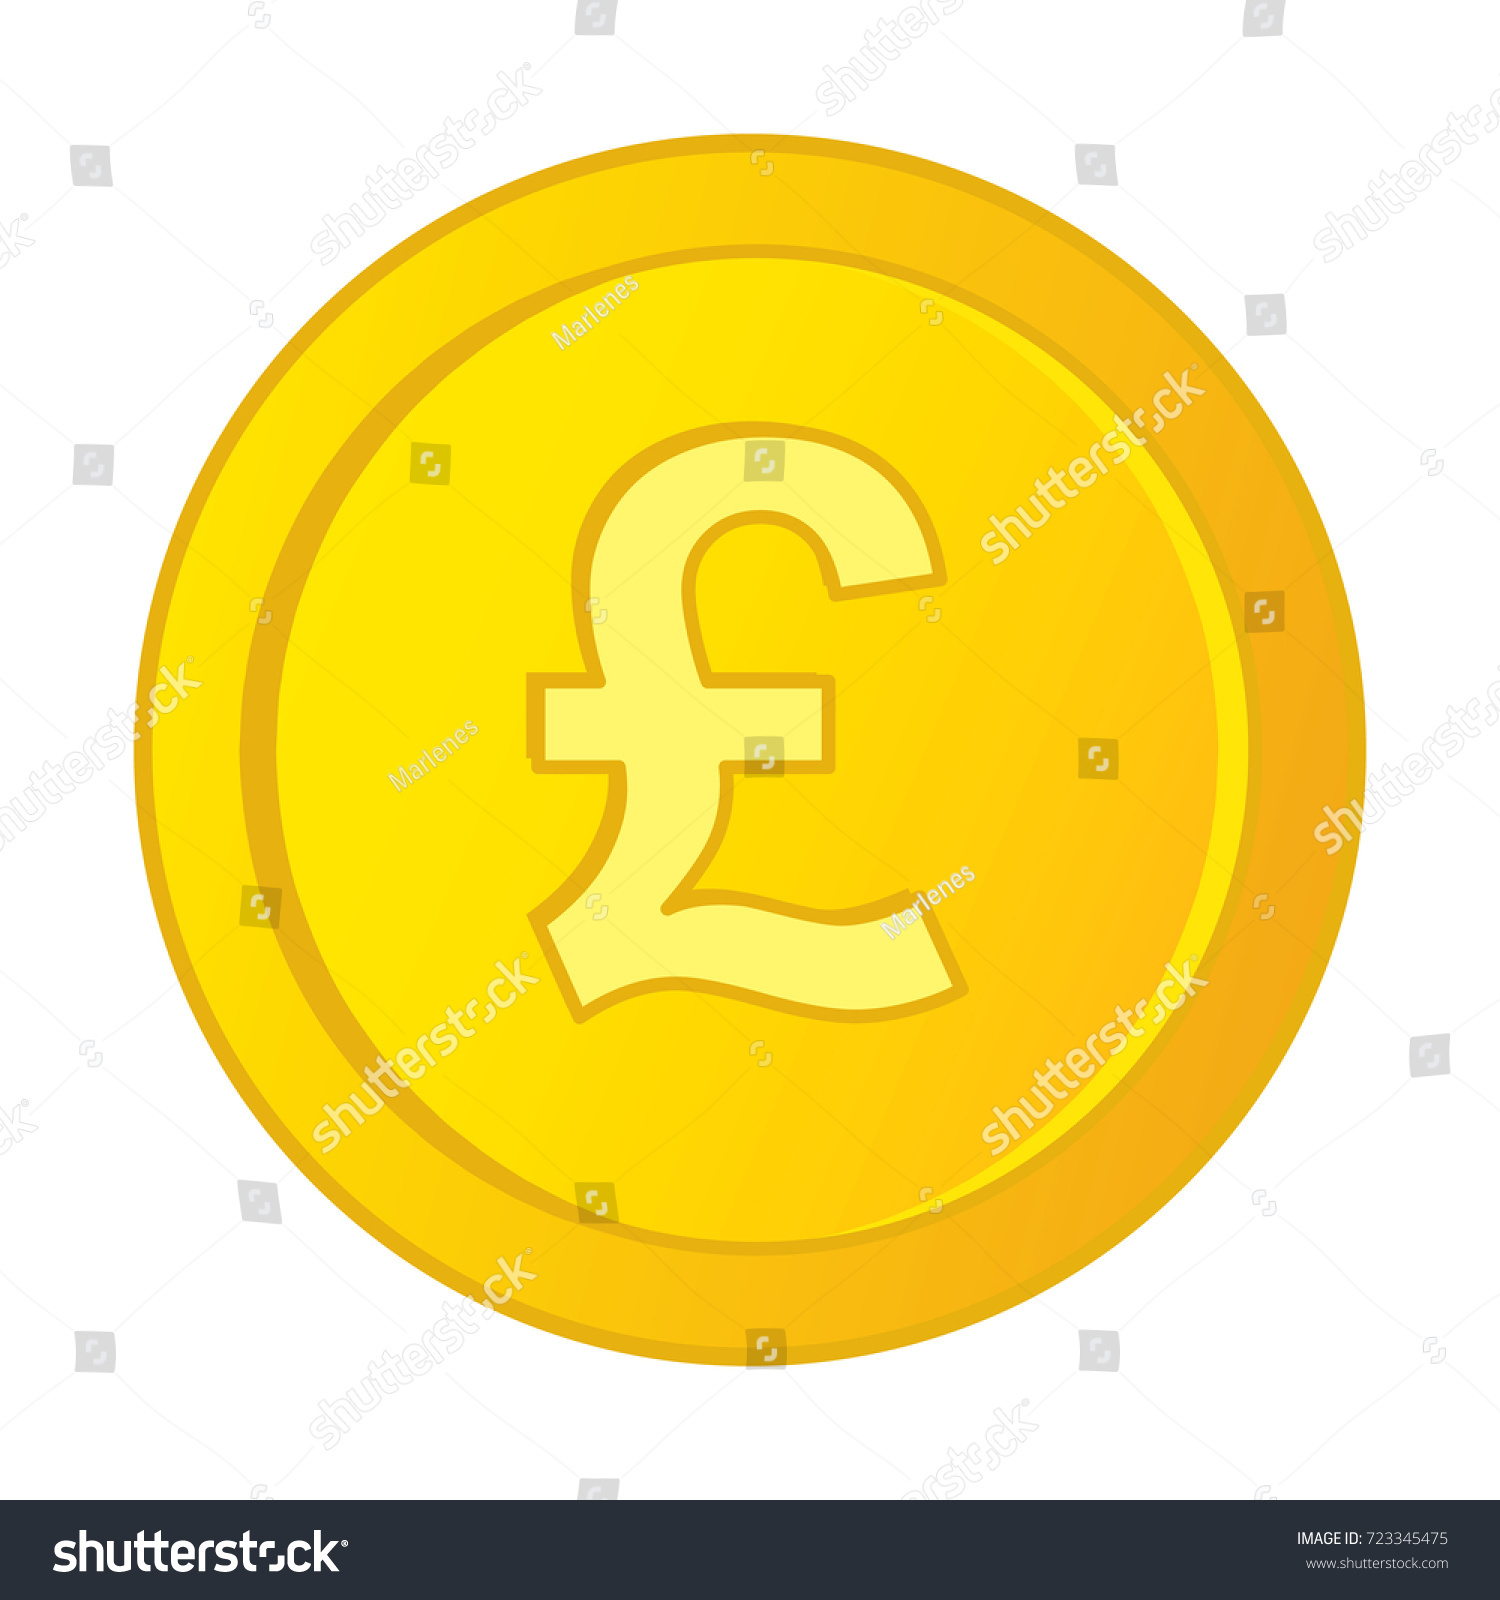 Vector british pound sterling symbol on stock vector 723345475 vector british pound sterling symbol on gold coin british pound coin vector illustration biocorpaavc Gallery